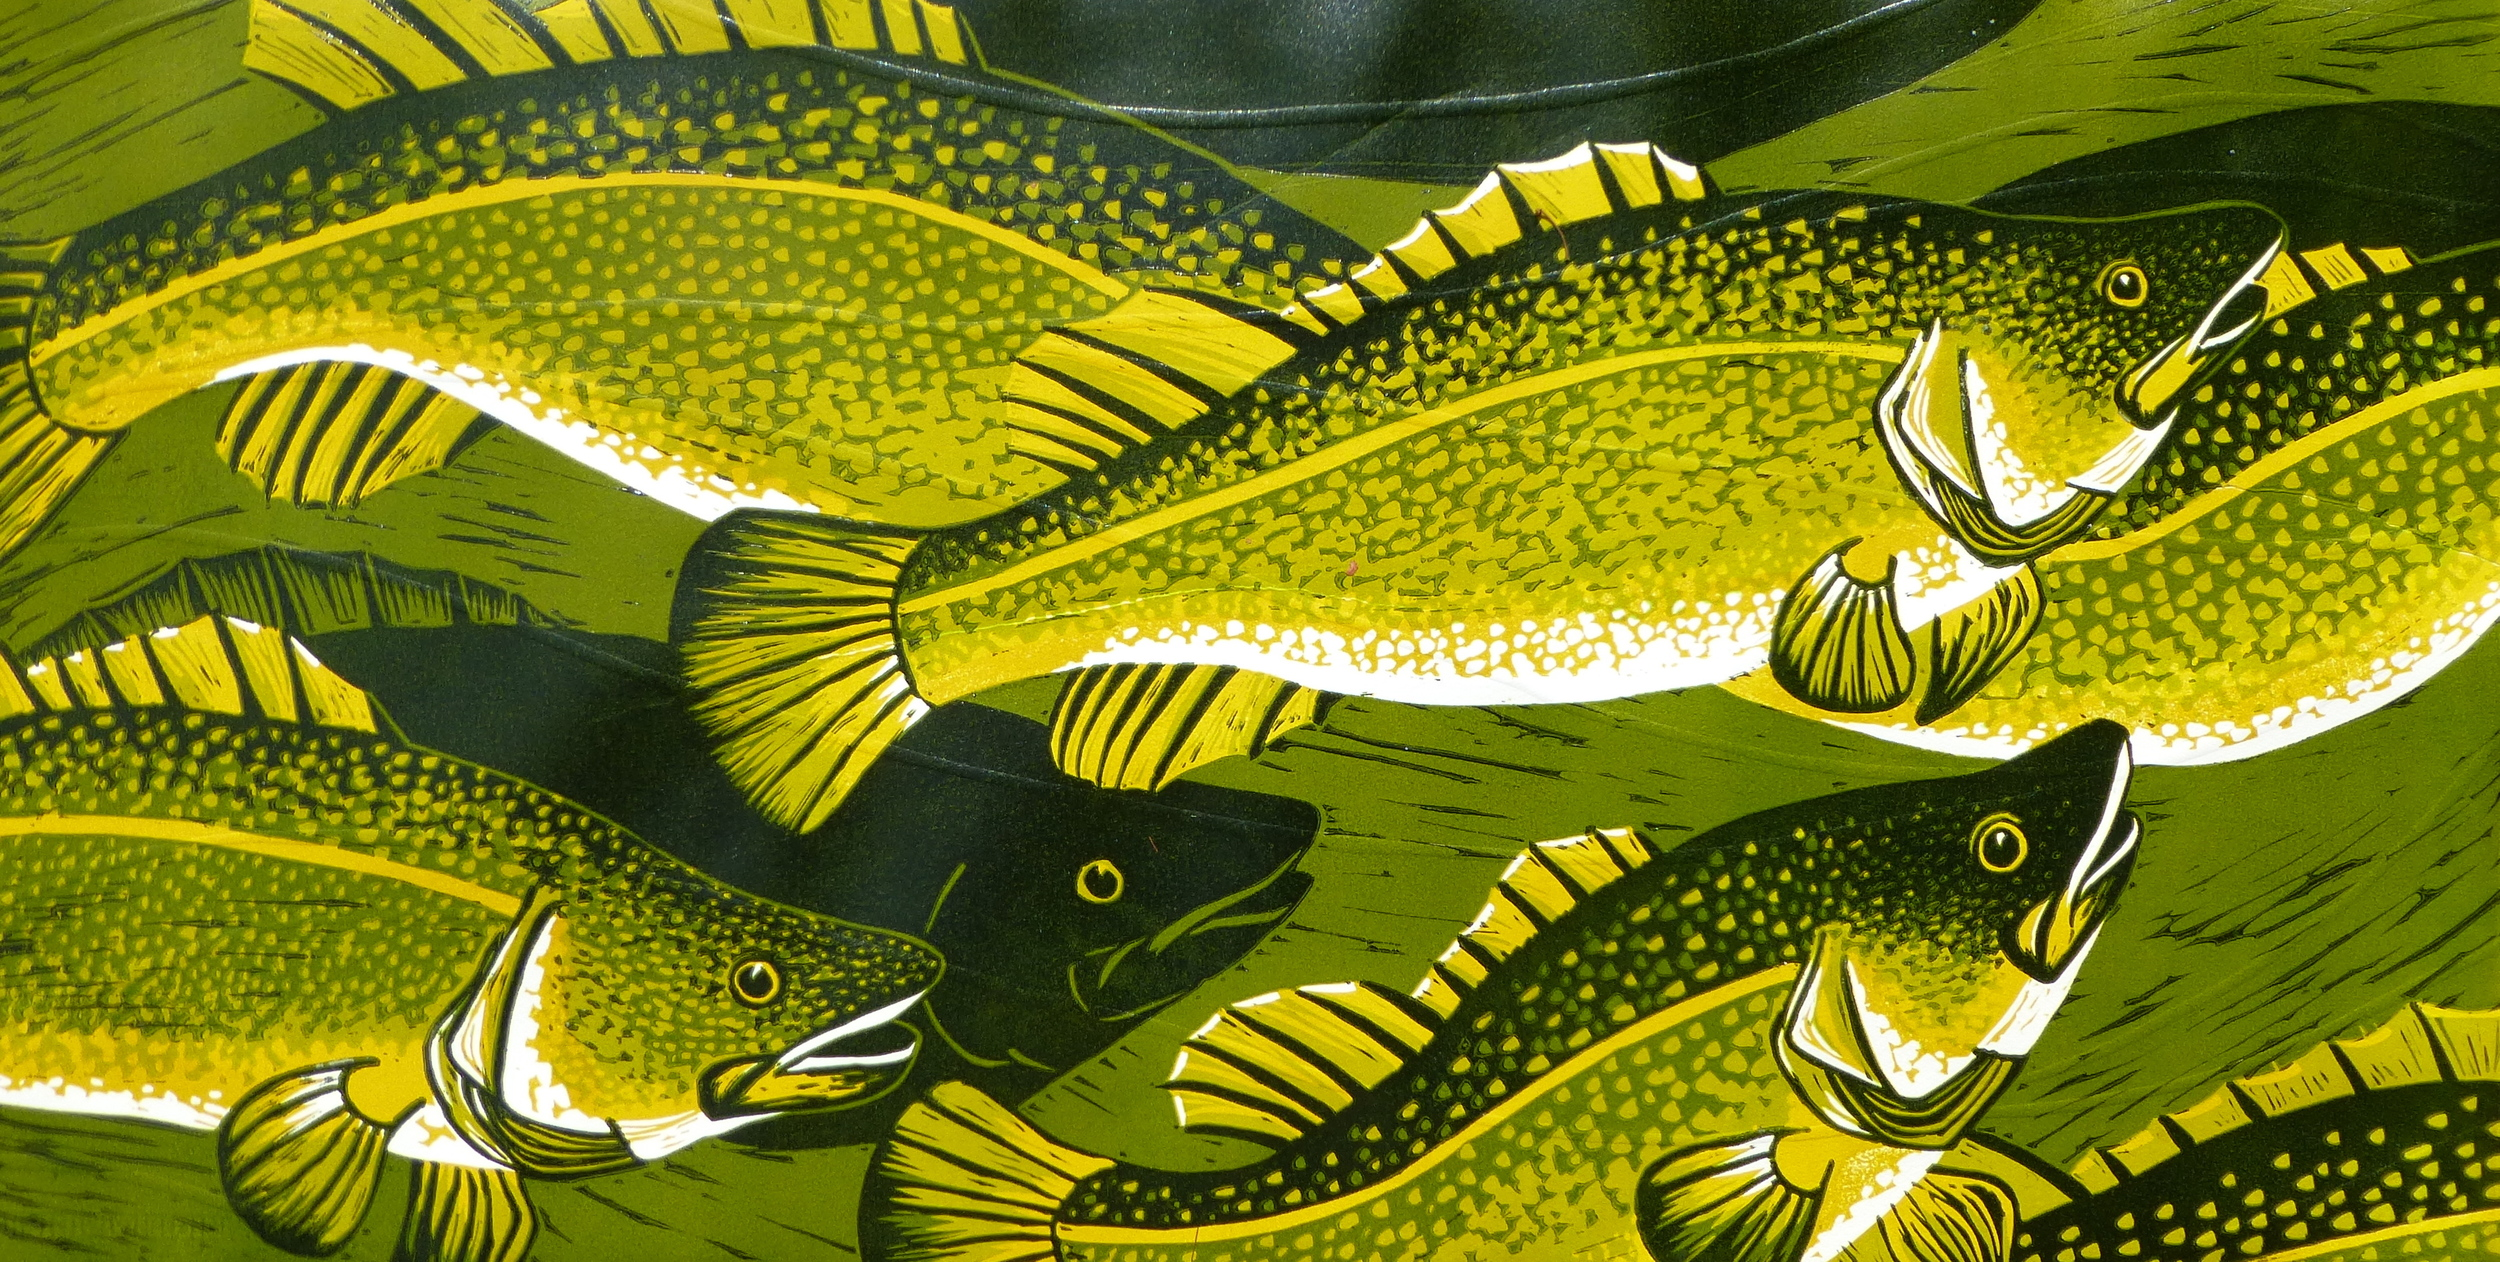 """Murray Cod Swimming   Reduction linocut with embossing, 2013  Irregular edition of 6  Image size (bleed print): 48.5 cm x 97 cm  $600                      Normal   0           false   false   false     EN-AU   JA   X-NONE                                                                                                                                                                                                                                                                                                                                                                            /* Style Definitions */ table.MsoNormalTable {mso-style-name:""""Table Normal""""; mso-tstyle-rowband-size:0; mso-tstyle-colband-size:0; mso-style-noshow:yes; mso-style-priority:99; mso-style-parent:""""""""; mso-padding-alt:0cm 5.4pt 0cm 5.4pt; mso-para-margin:0cm; mso-para-margin-bottom:.0001pt; mso-pagination:widow-orphan; font-size:10.0pt; font-family:""""Times New Roman"""";}         Although Murray cod ( Maccullochella peelii)  are now a threatened species, they once inhabited much of the Murray-Darling basin in great numbers.  Murray Cod Swimming  hints at what once was, and could be again."""